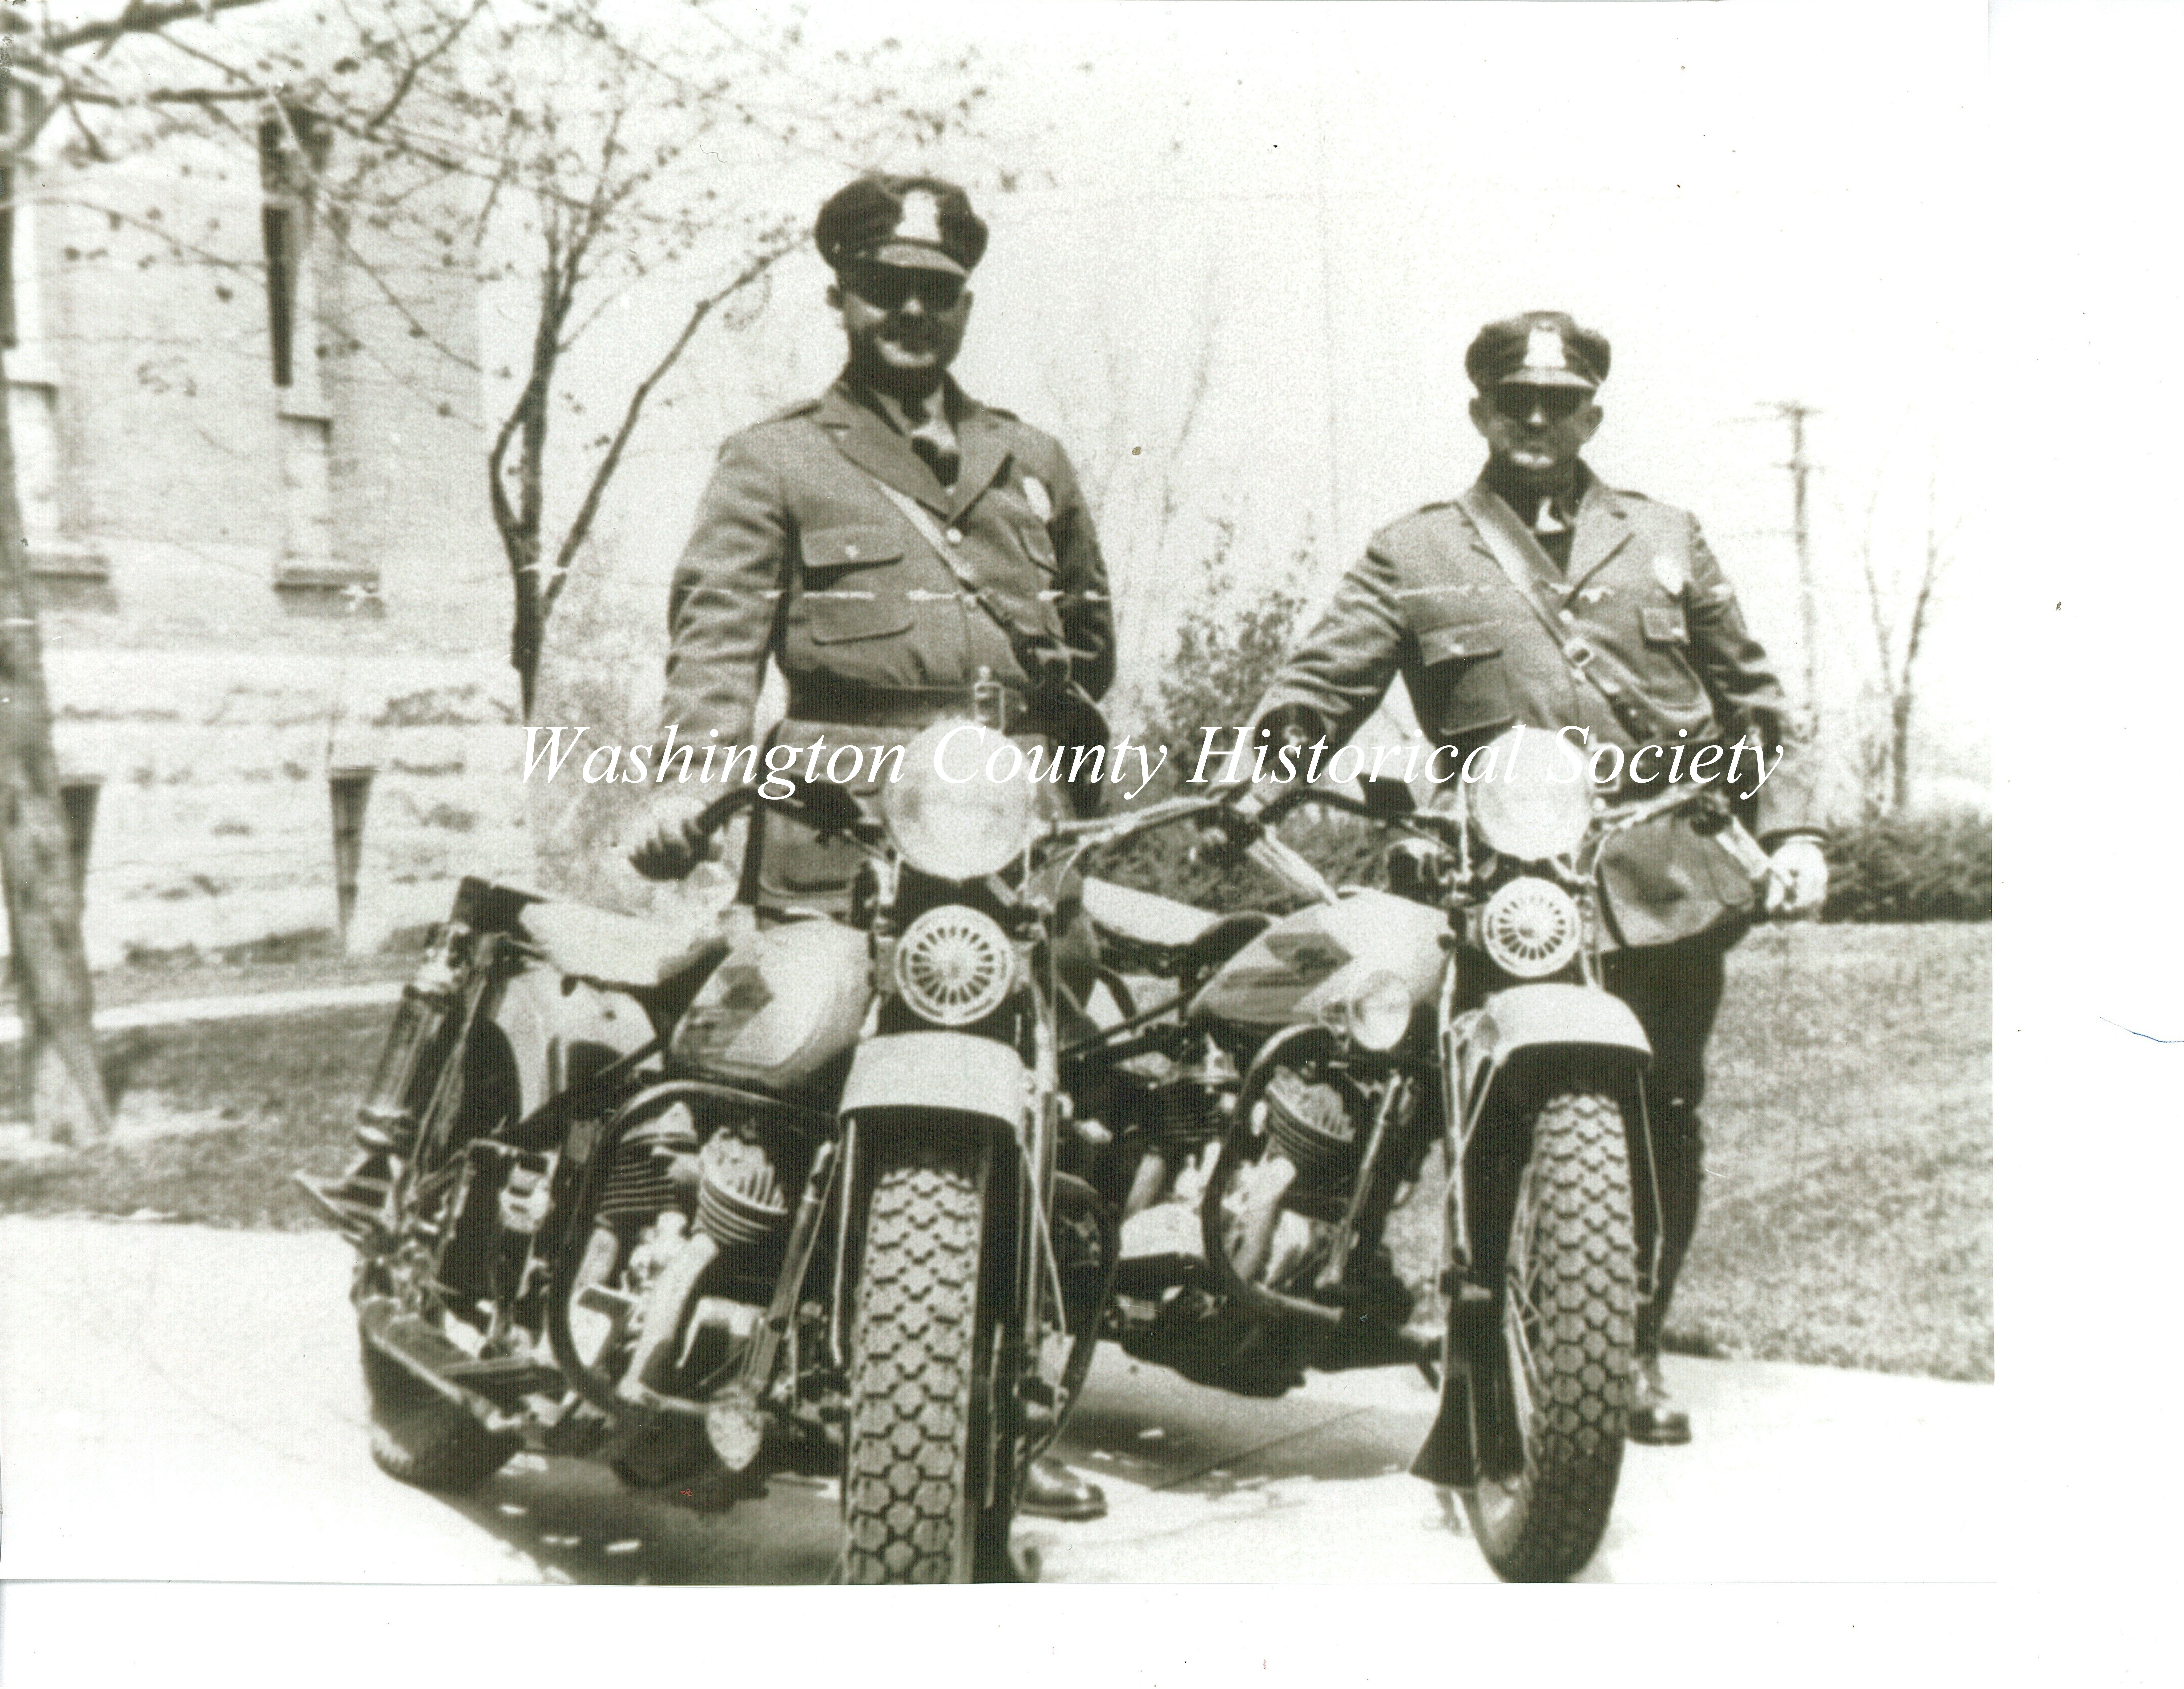 motorcycle cops 1935 George Brugger and Bill Johnson  copy